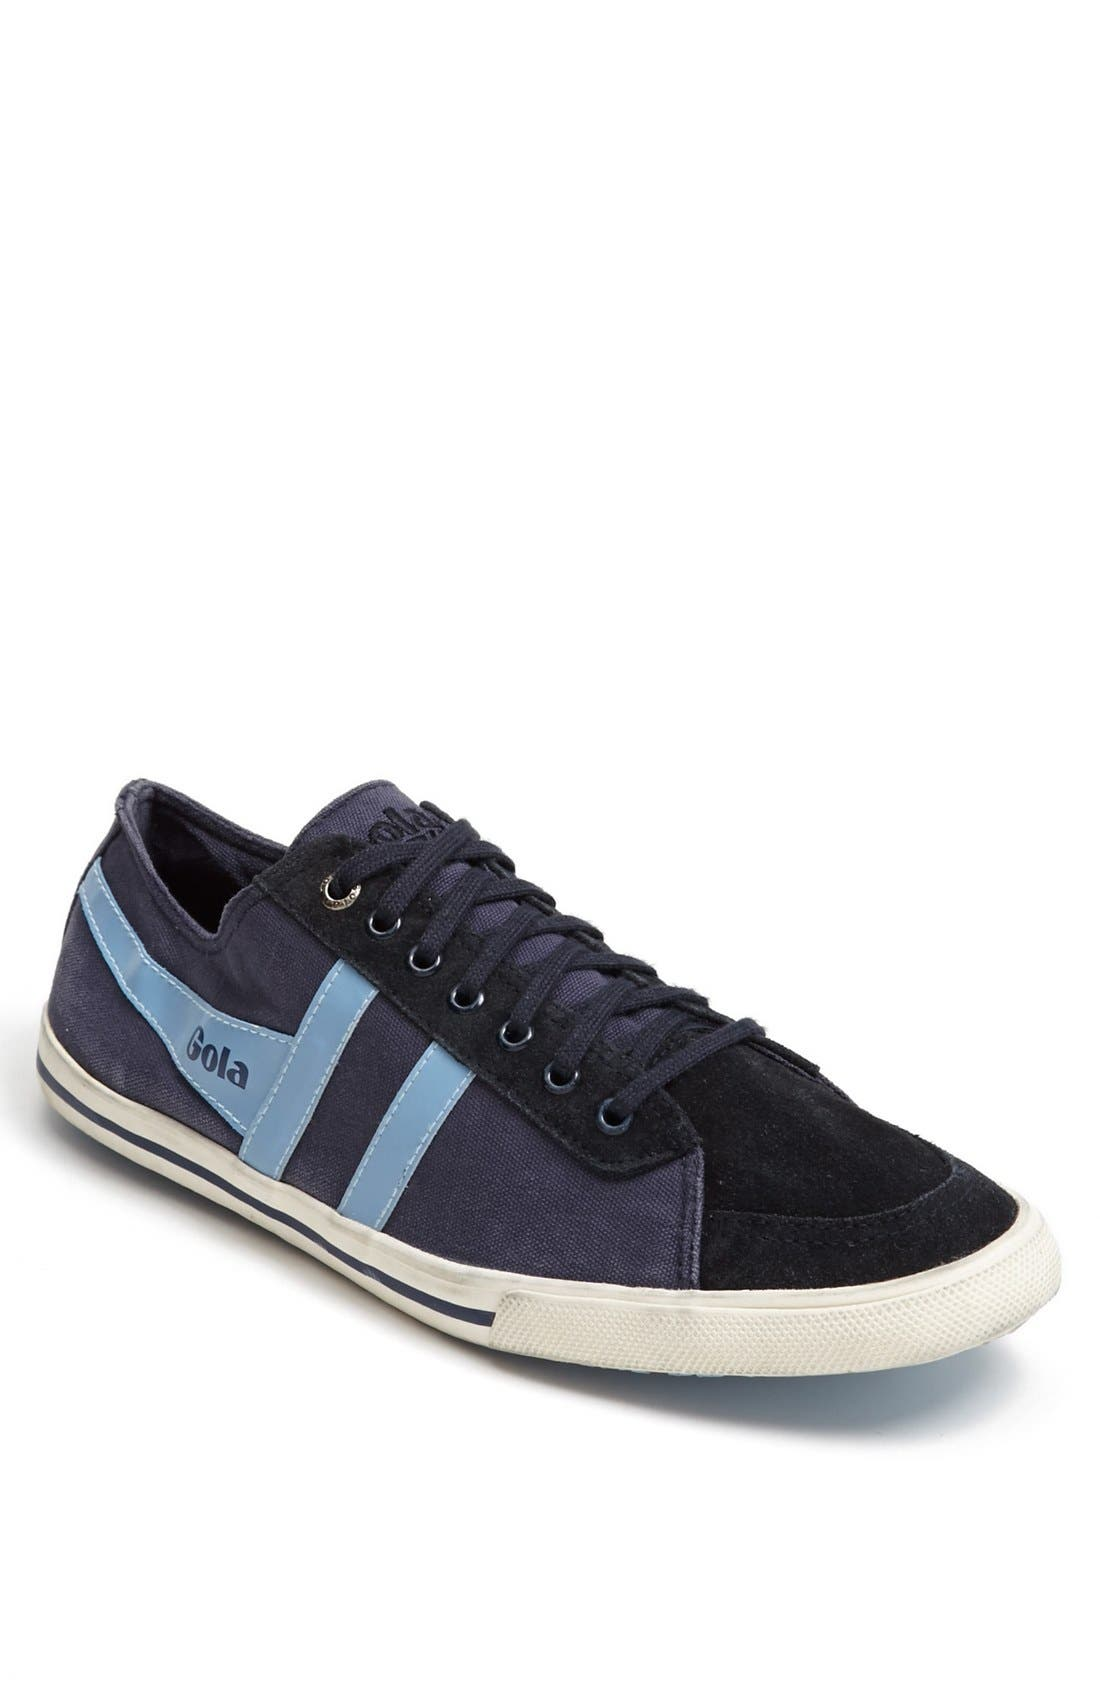 Main Image - Gola 'Quota' Sneaker (Men)